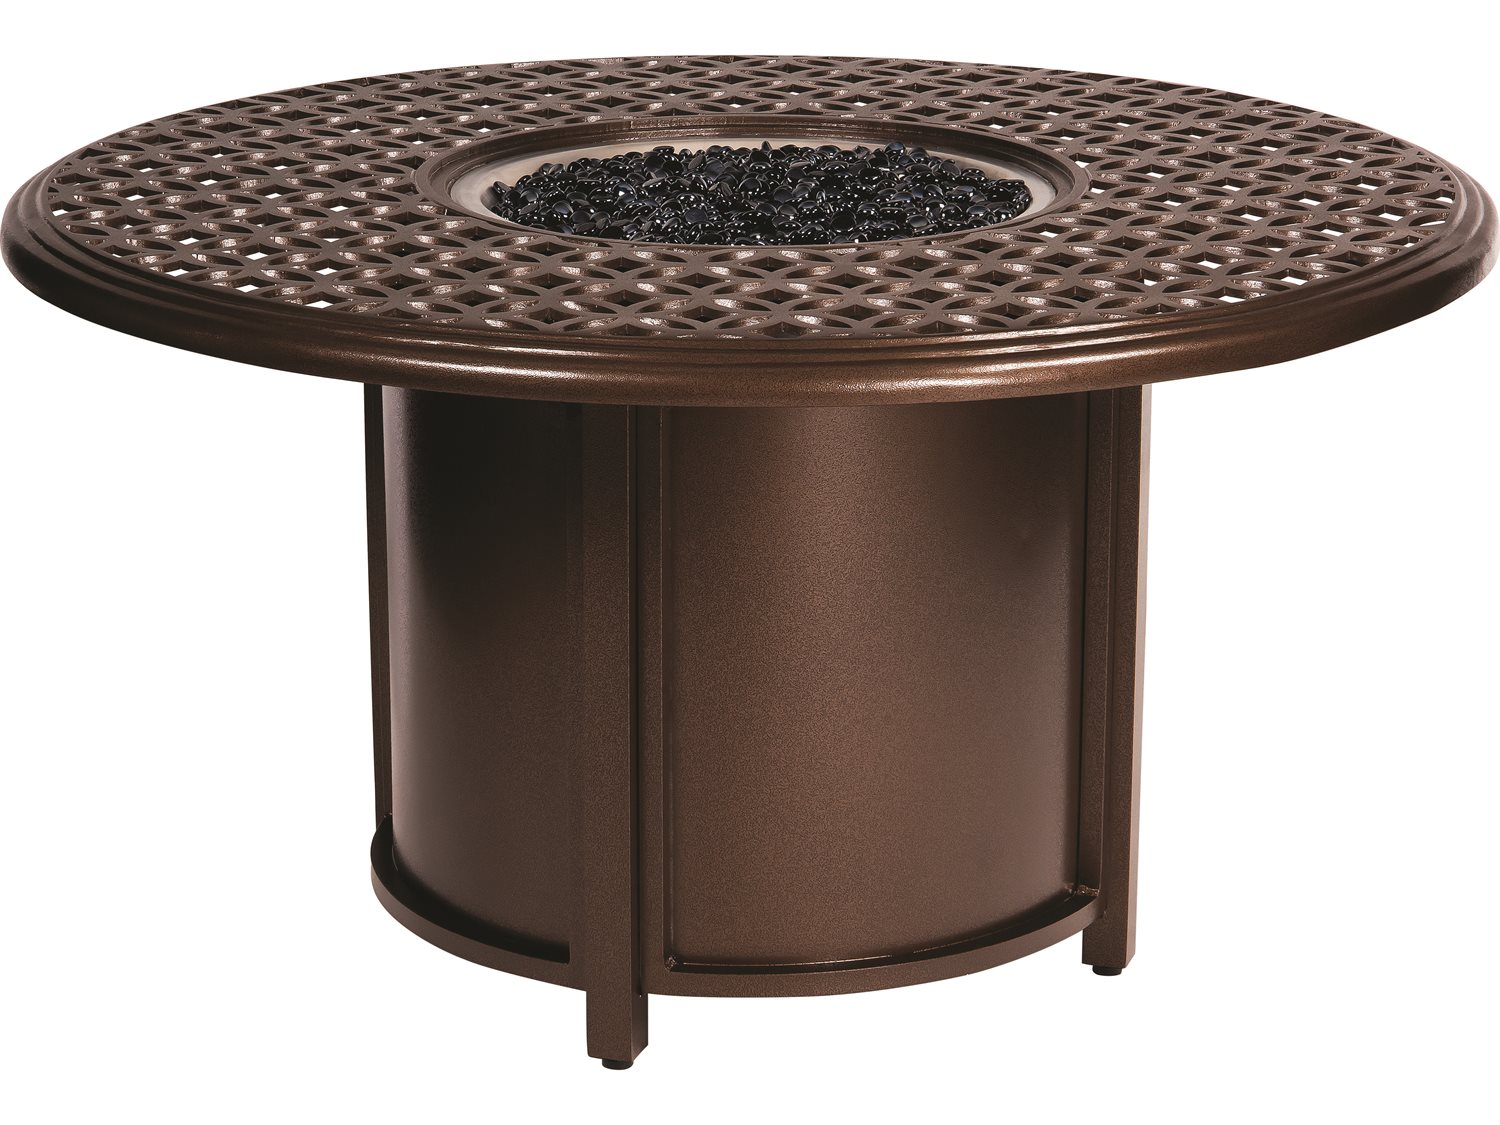 Woodard Casa Cast Aluminum Fire Table With Round Chat